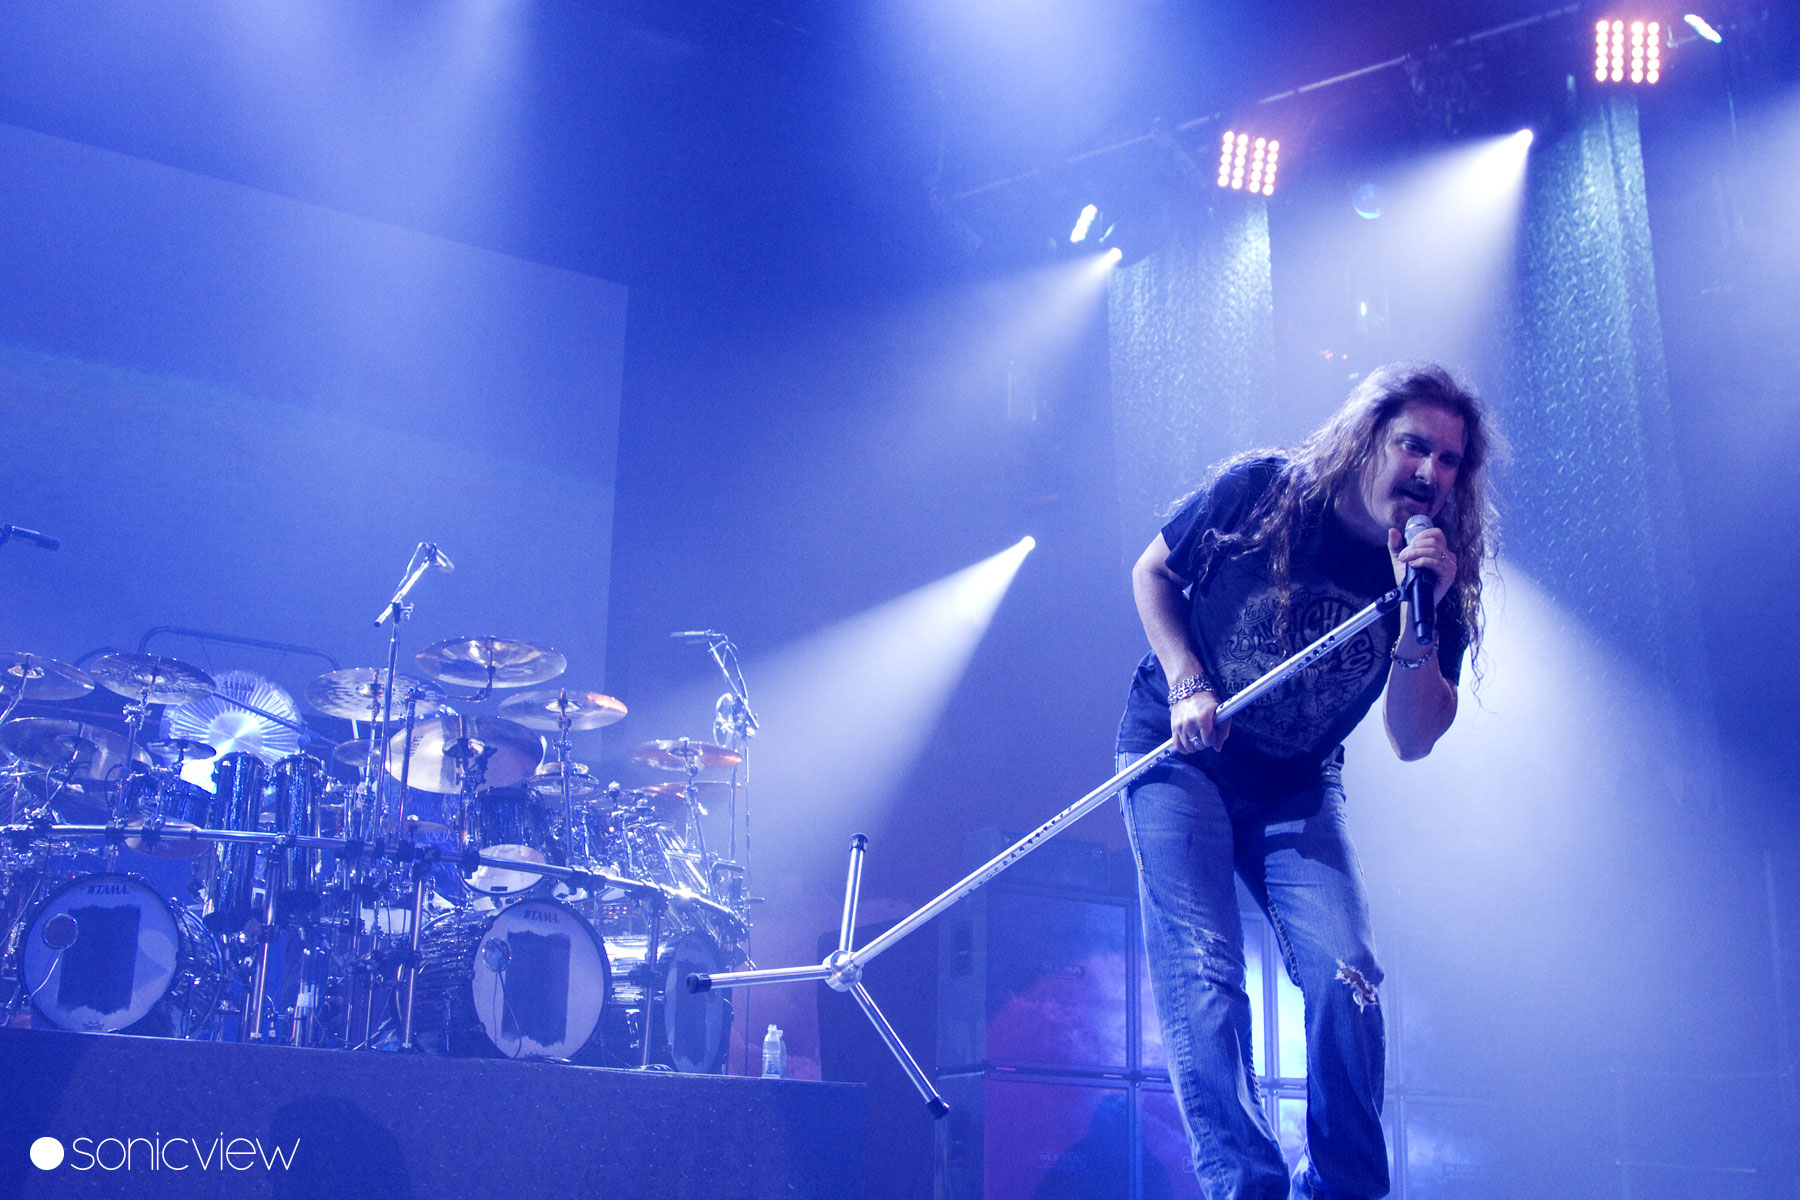 Dream Theater: Live at KB Hallen 2009, Copenhagen, Denmark